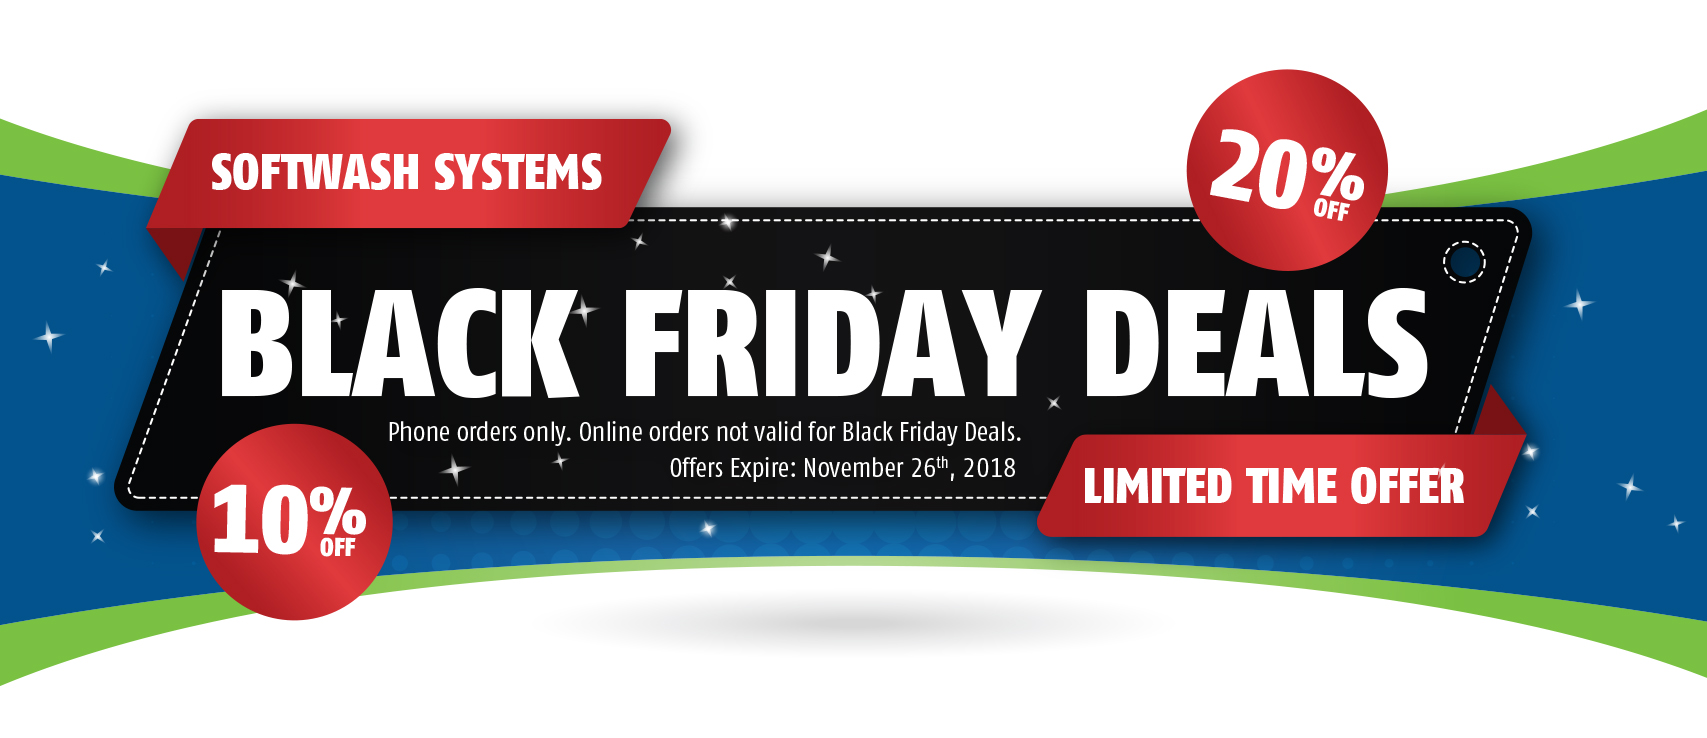 SoftWash Systems Early Black Friday Deals